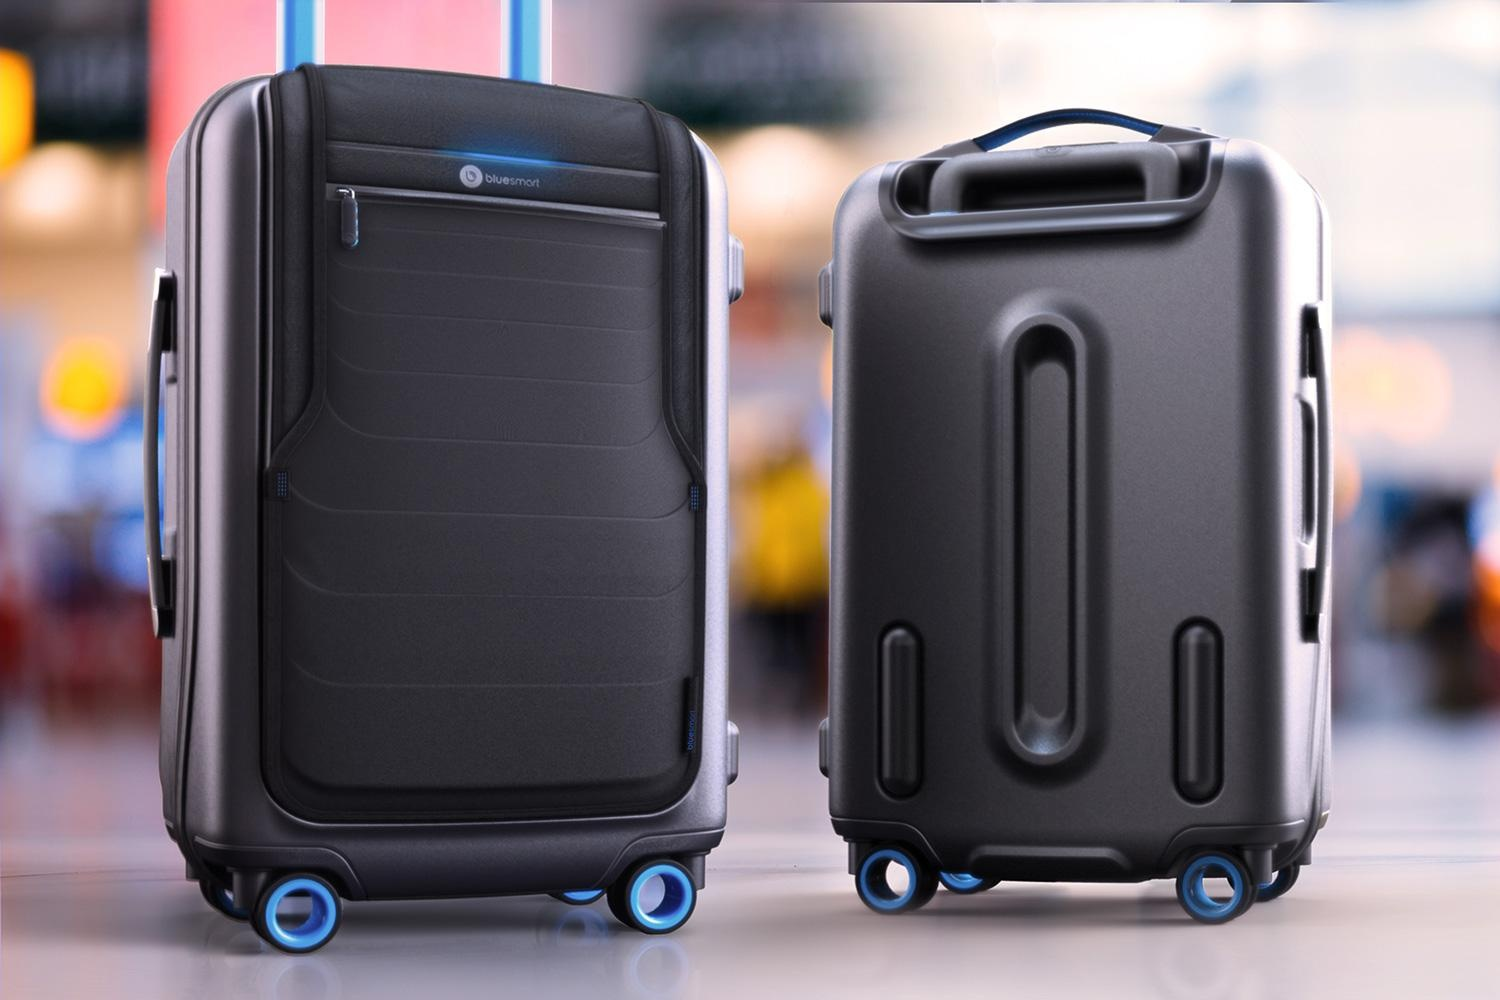 bluesmart-connected-suitcase-in-airport-1500×1000